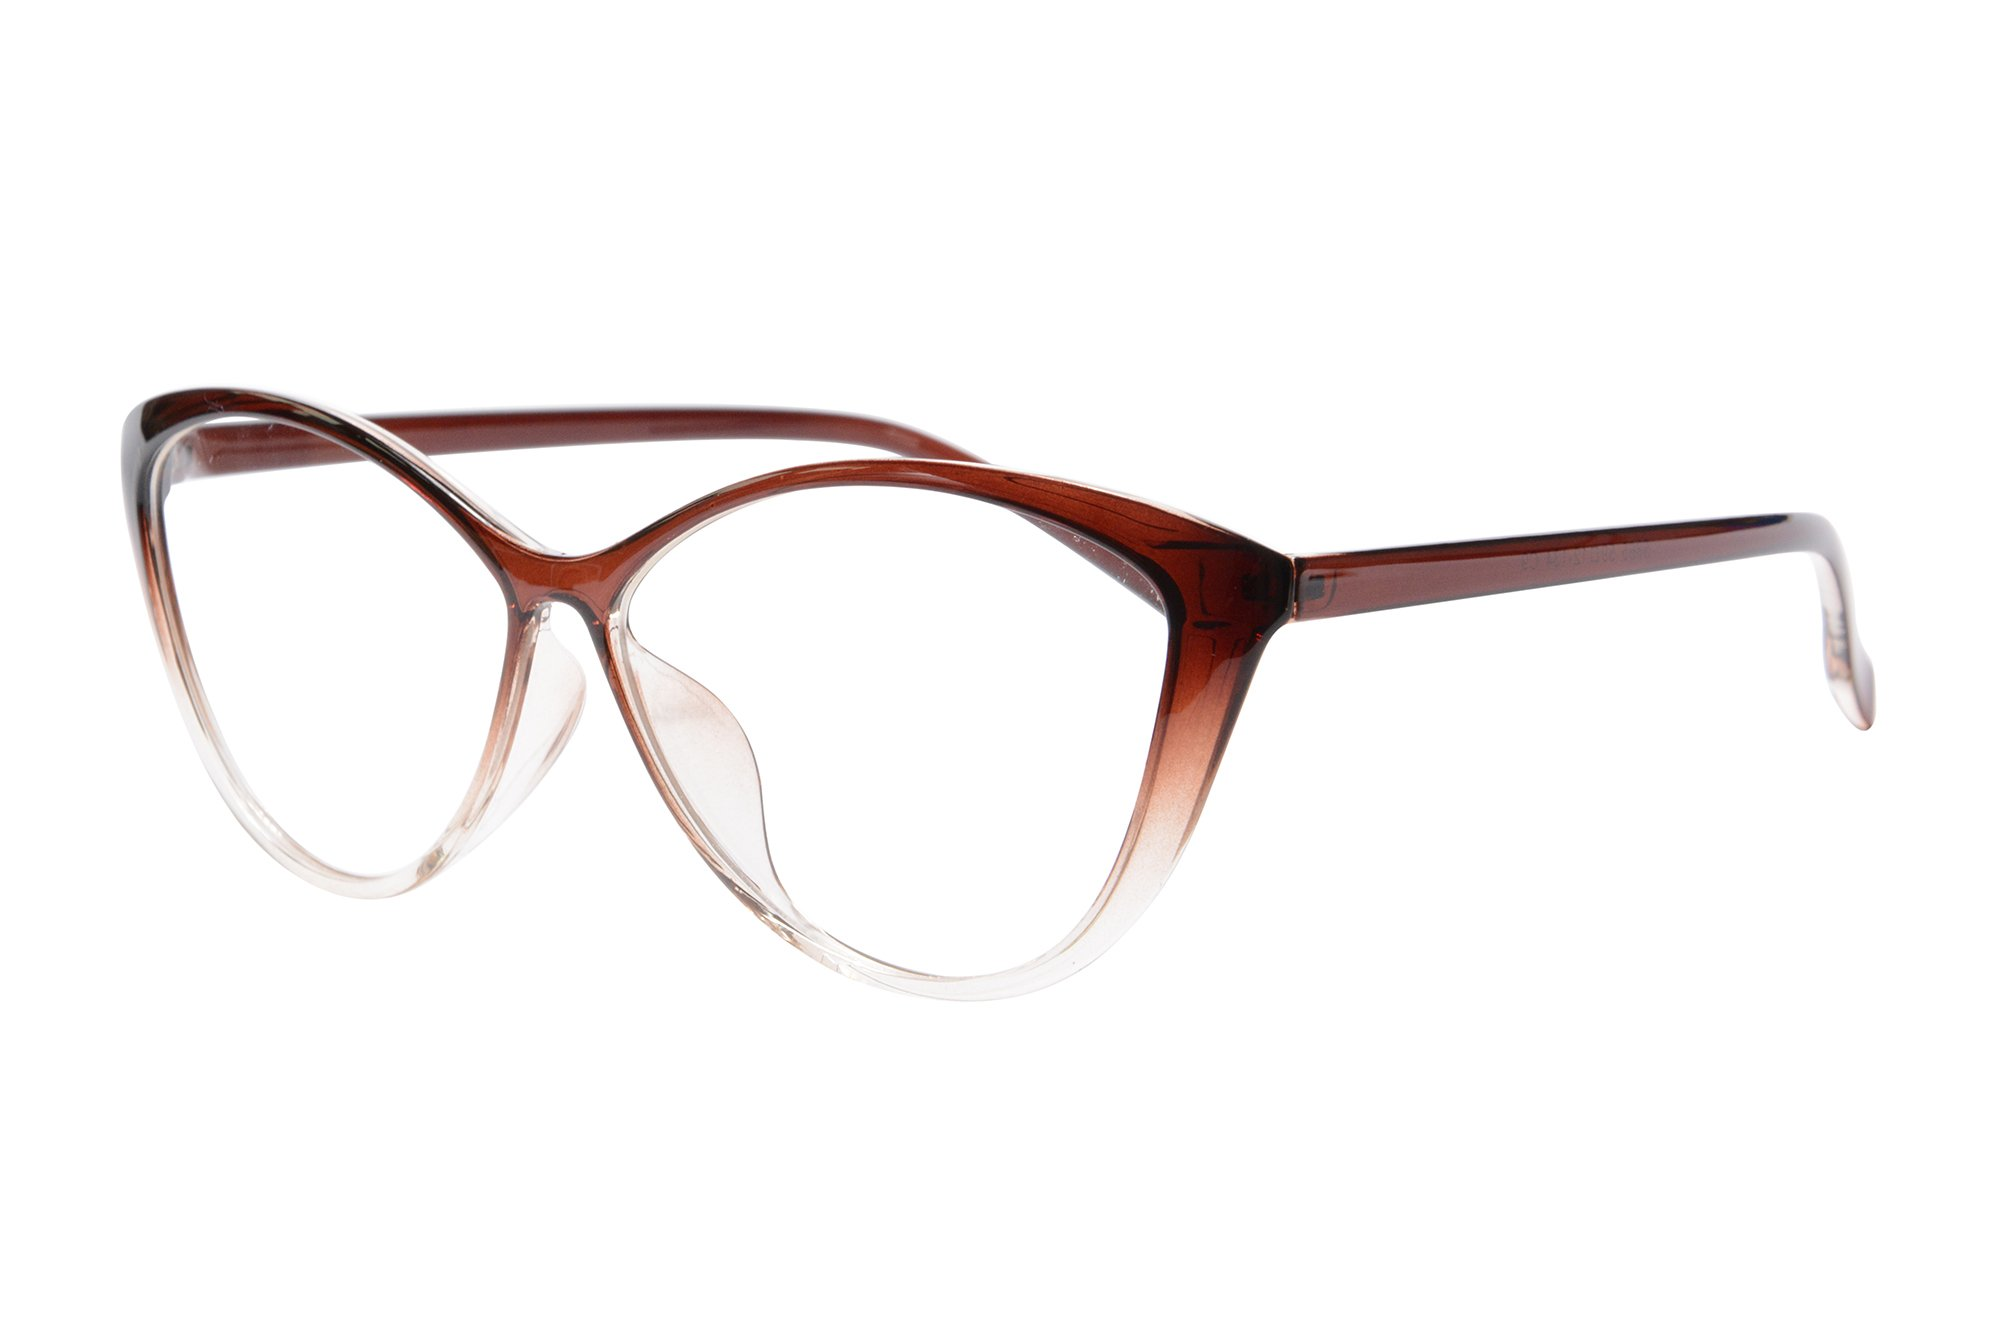 Ladies Cateye Glasses Frames Blue Blocking Clear Lens Computer Reading Glasses-5865(brown, anti blue light up 0.5 down 3.25)